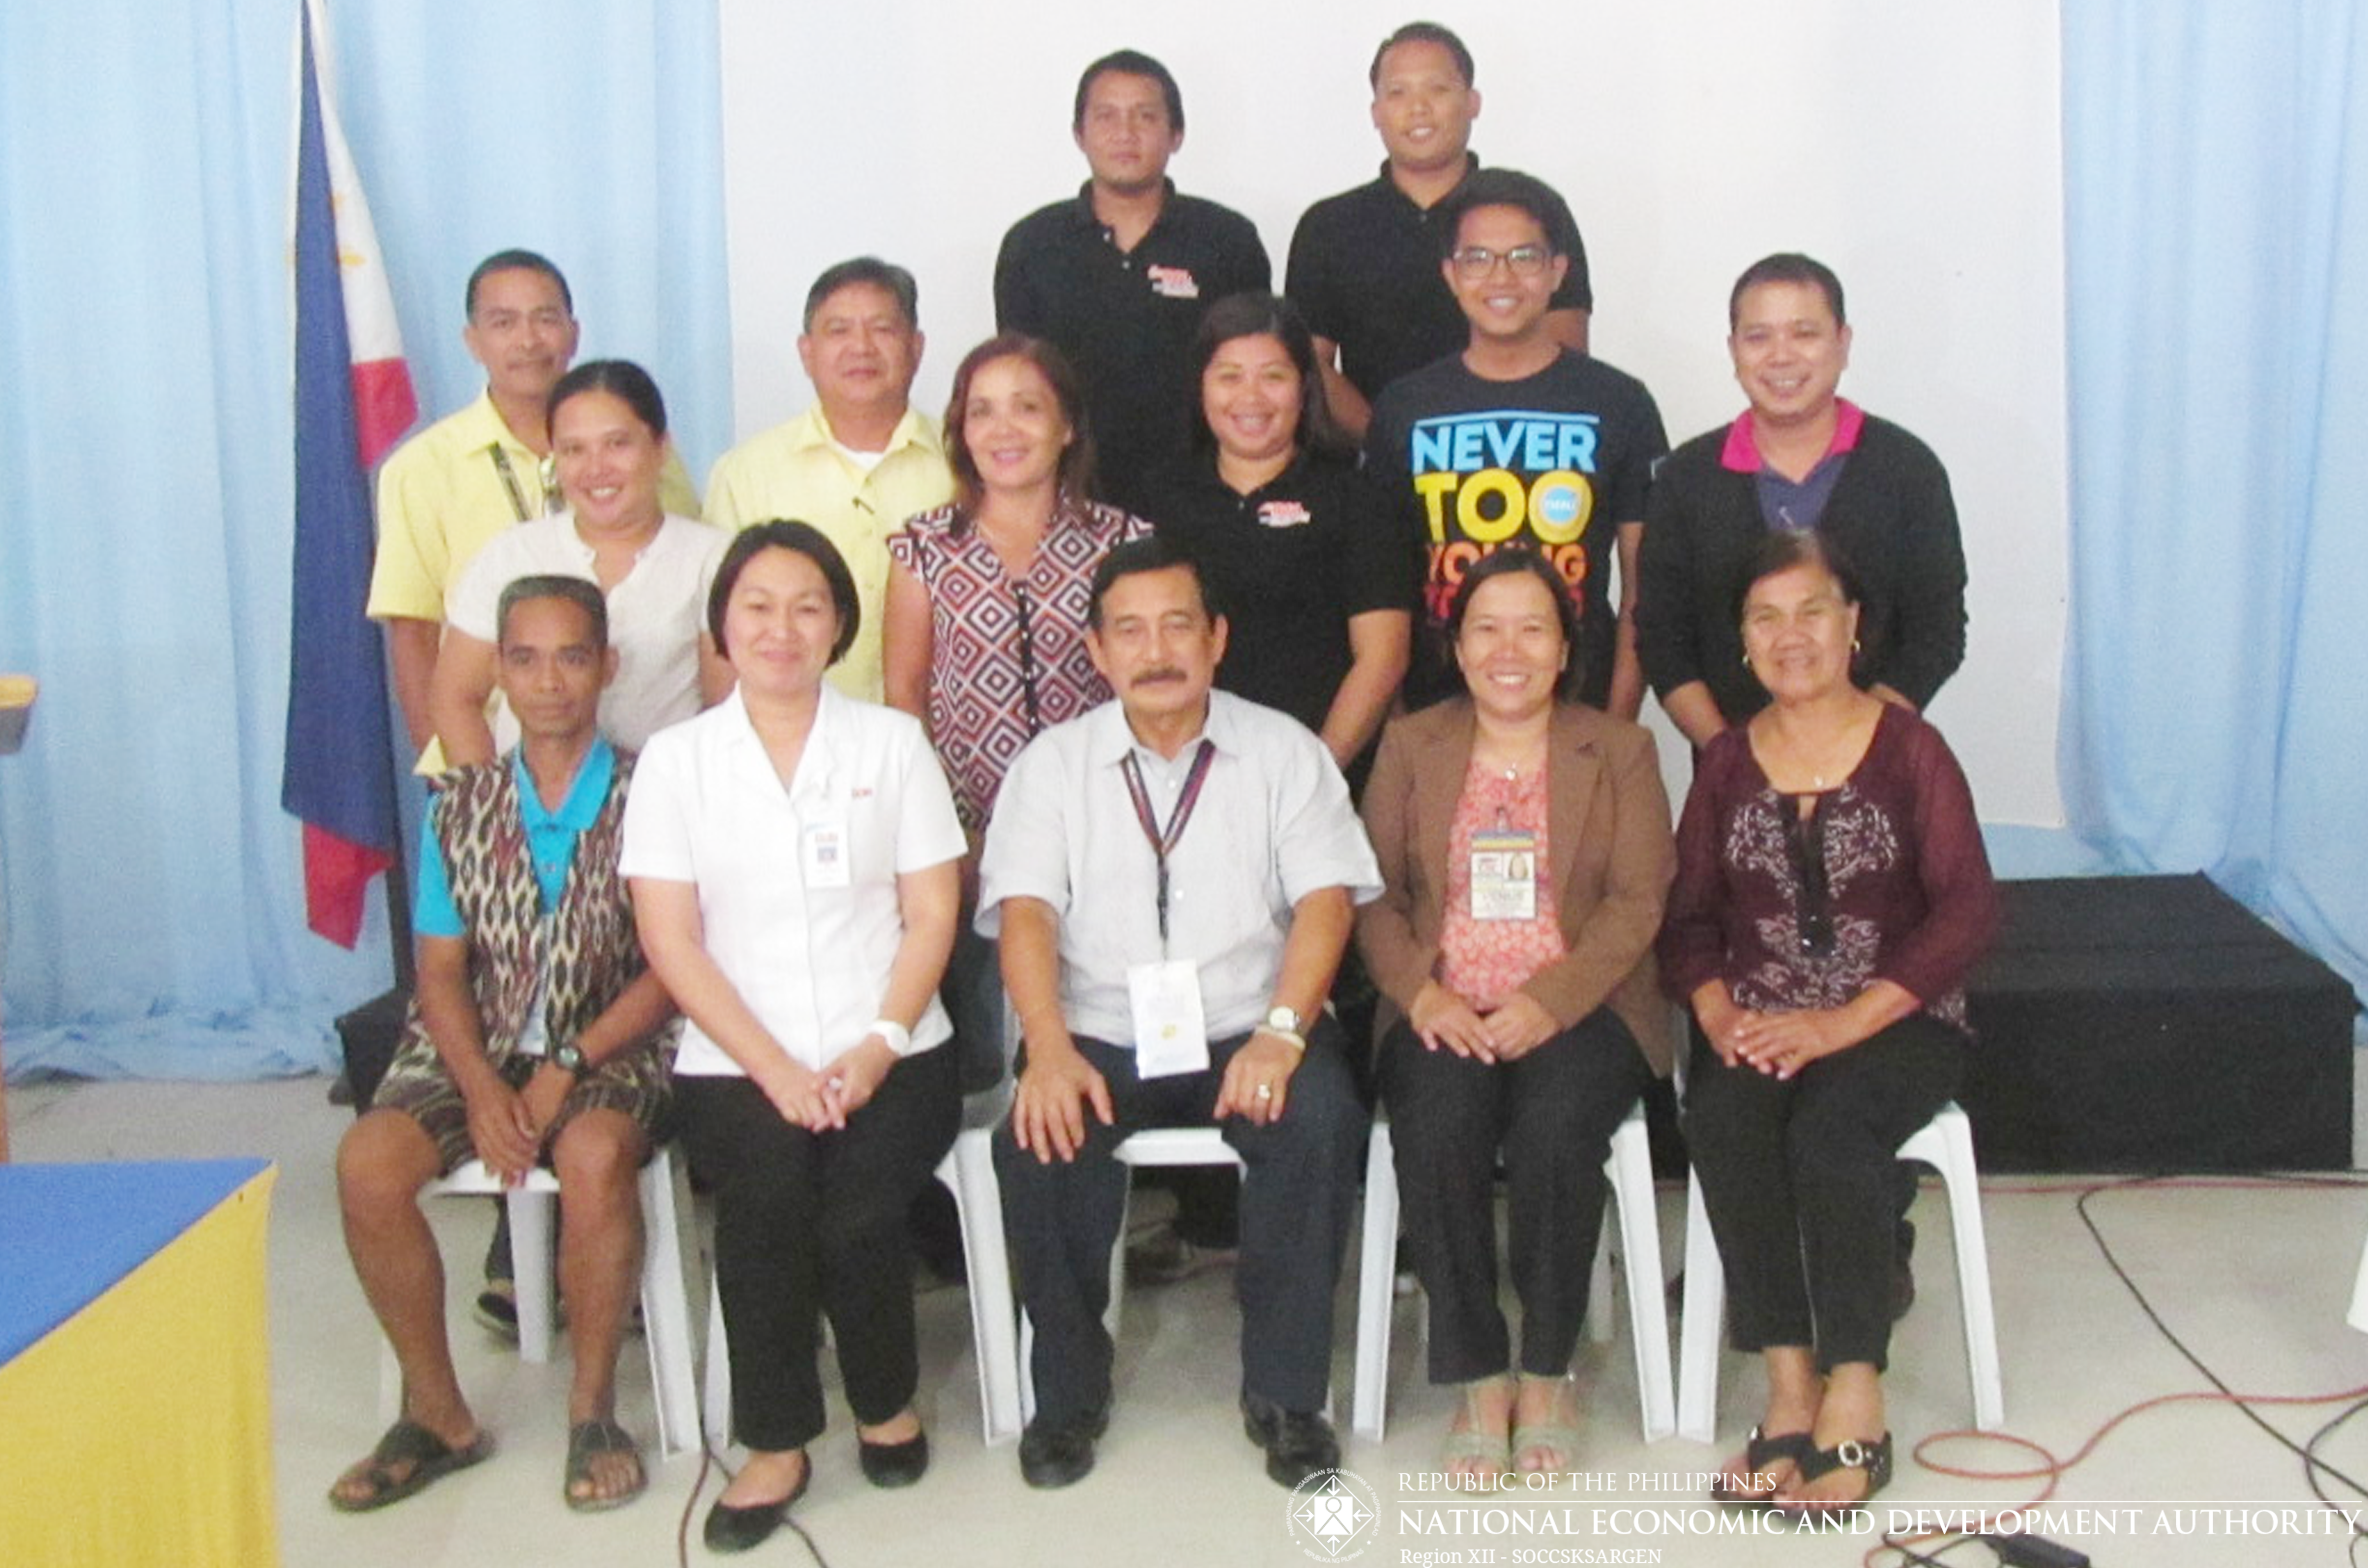 RSC XII Chairperson Arturo G. Valero (center) in photo op with the nominees for the 2016 SOV present during the Executive Level Meeting on 27 September 2016. From left to right (Front row): Mr. Marcelo Gusanan (Adult); Ms. Leamor B. Bañaga (representing Dolefil); CSC XII ARD Venus D. Ondoy; and Ms. Ella Duterte Pobre (representing AMPC). (Second row): Ms. Mercelita Q. Camiring (representing AMPC); Ms. Meriam Pangnaduyon-Booc (Adult); Ms. Clarissa A. Pana (representing the KidCERU together with Mr. Noefel A. Manginubong and Mr. Gabriel A. Paderna at the back row); (Third row): Mr. Eustaquio dela Cruz, Jr. and Mr. Norlan A. Yap (representing the Yellow Bus Line); Mr. Algem Cris B. Crusis (Youth); and Mr. Gerry Jesus J. Villano (Adult). Absent: Mr. Jonalier M. Perez (Adult).